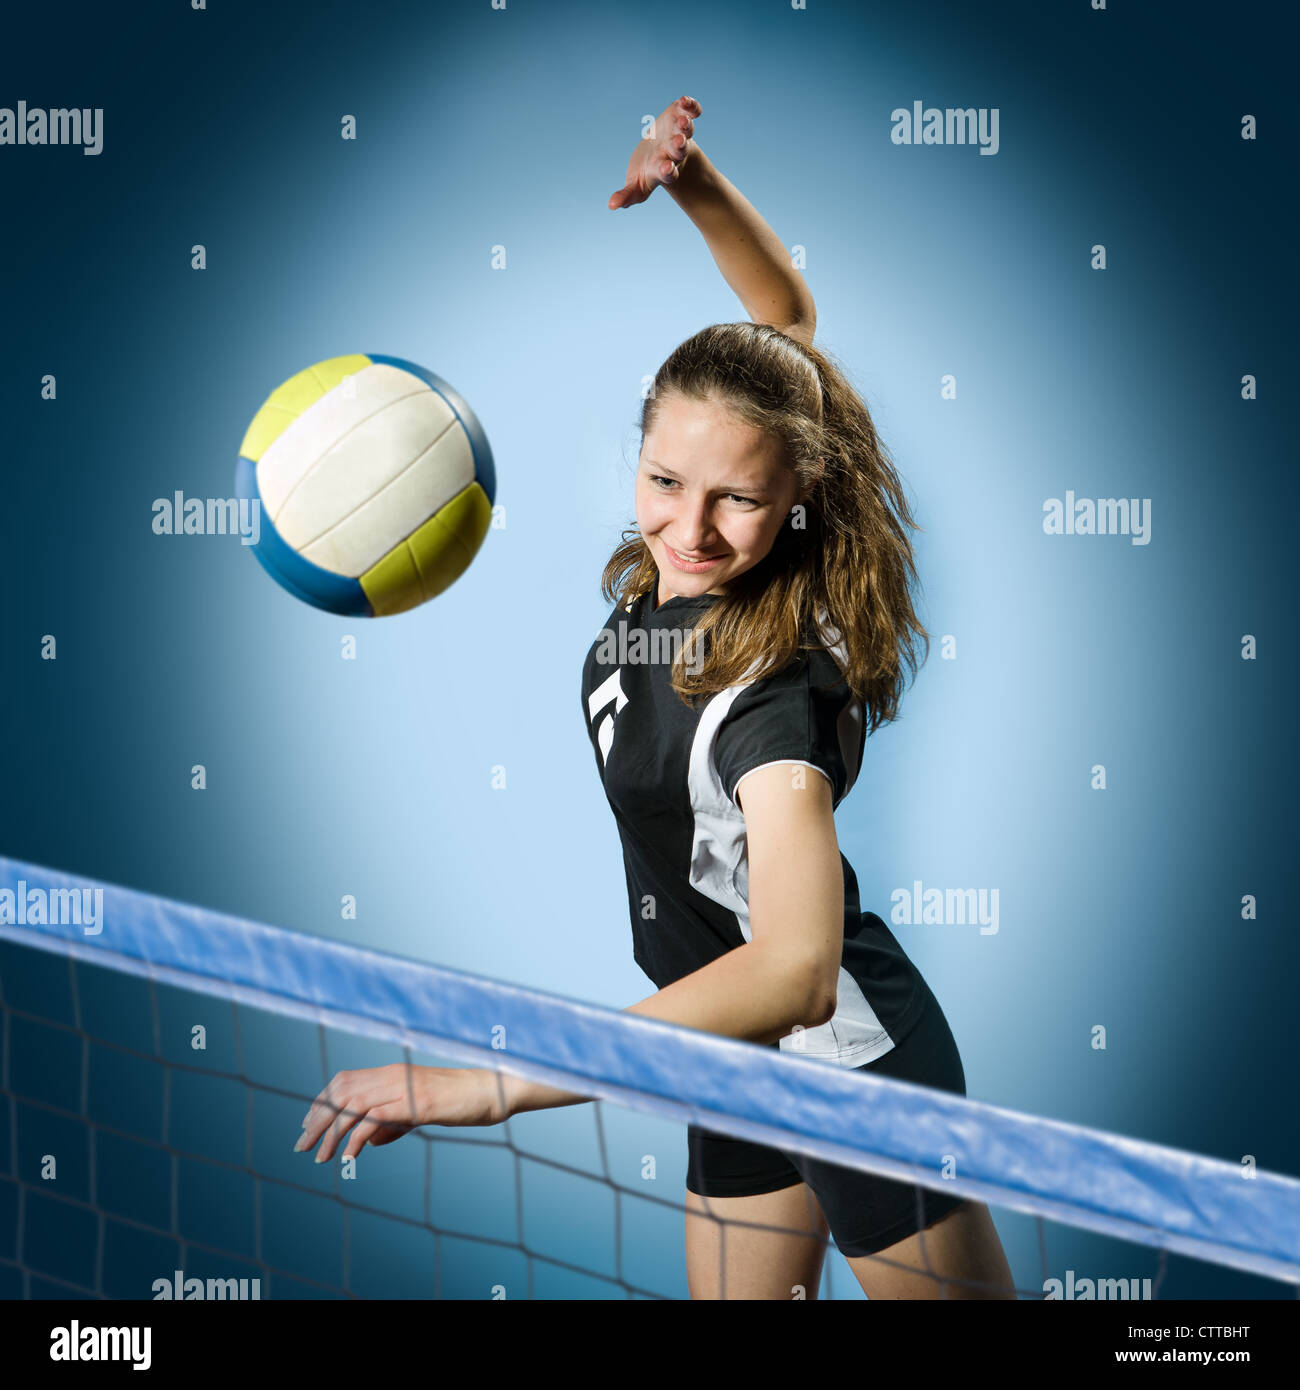 female volleyball player with a ball - Stock Image